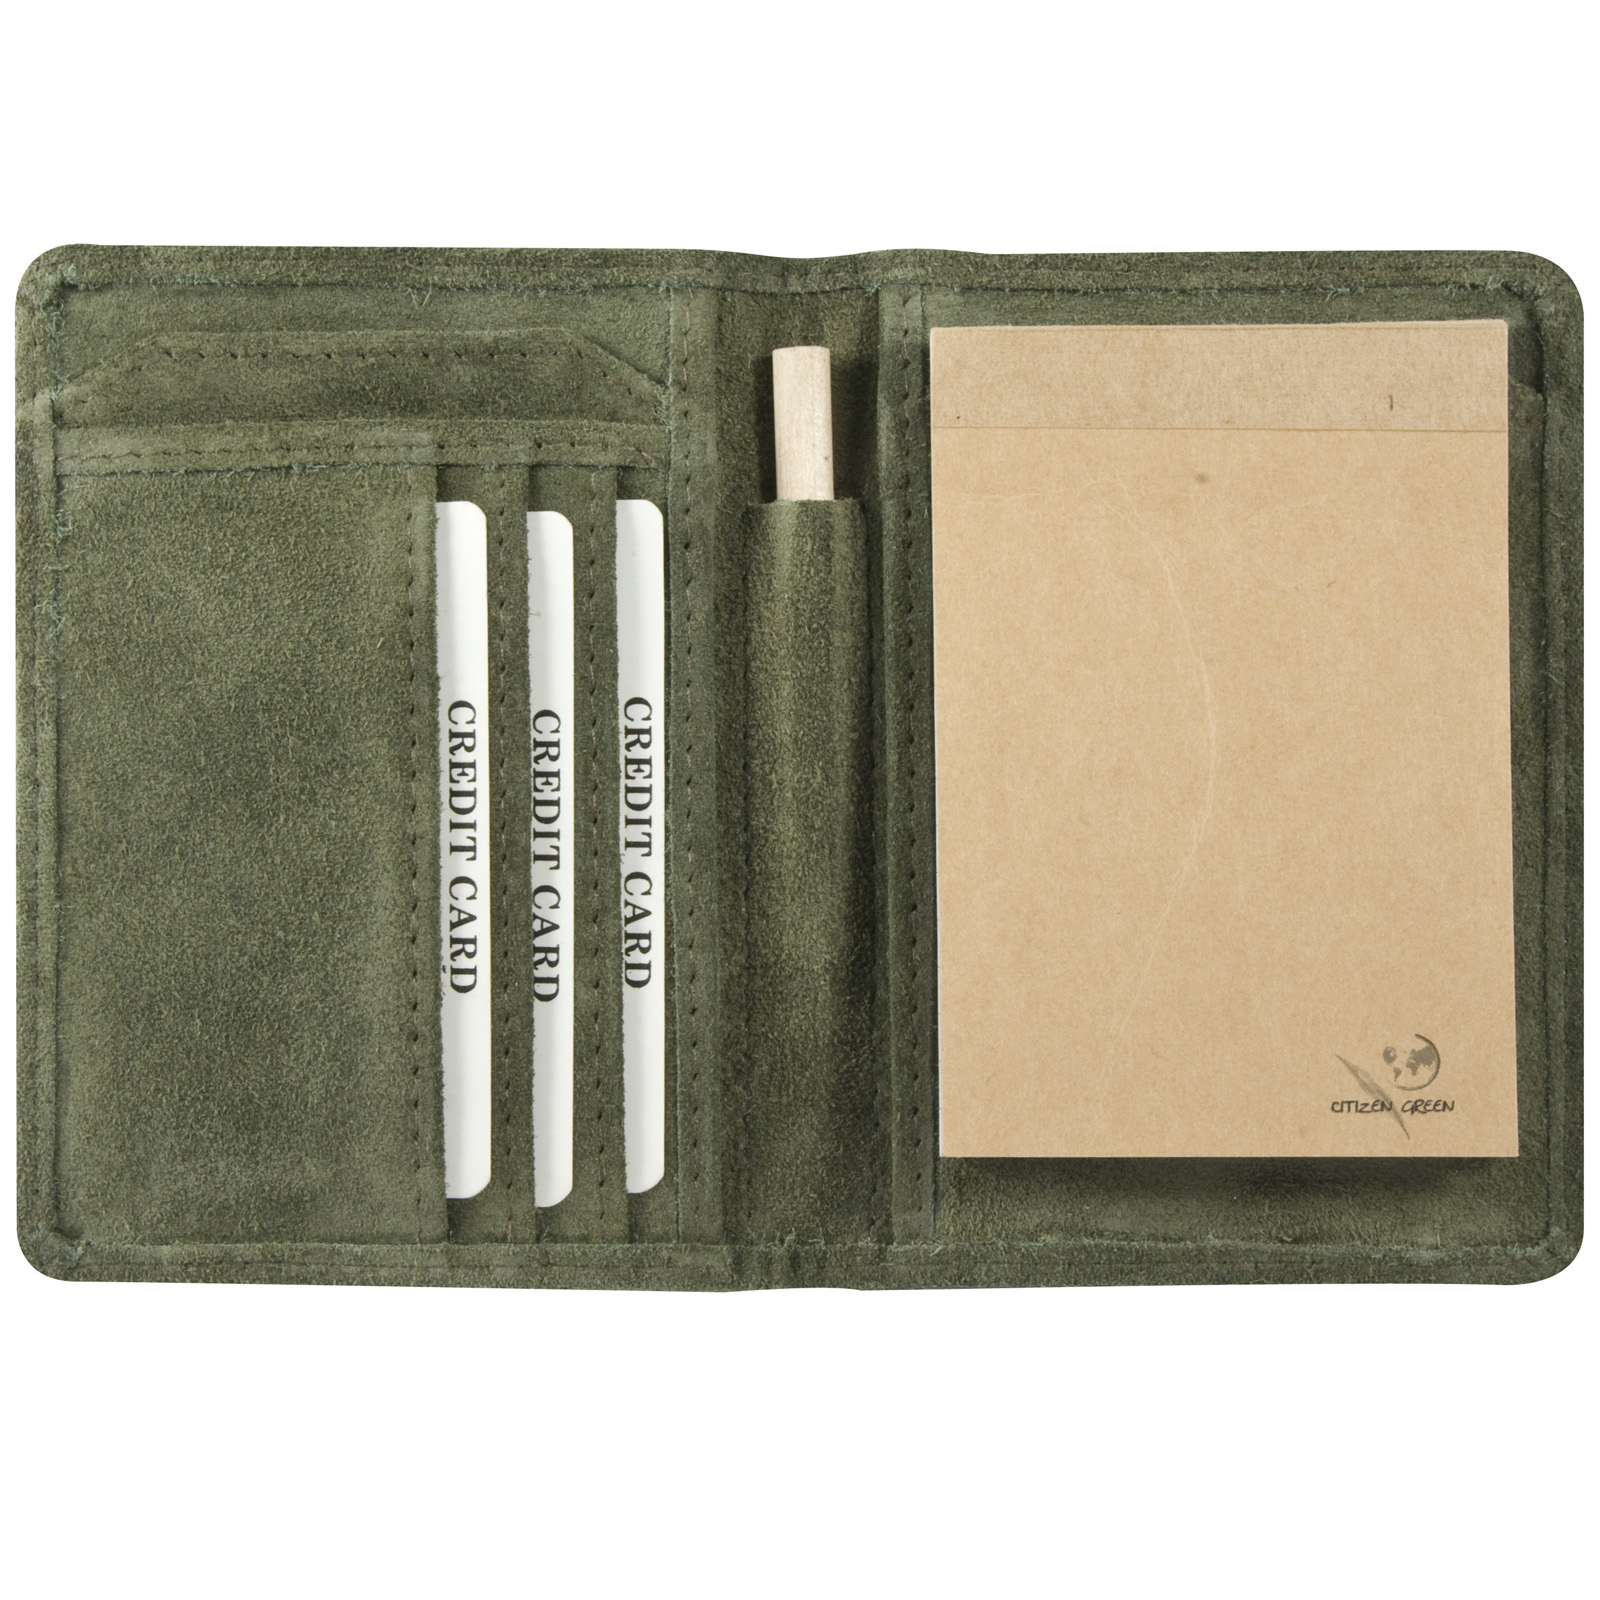 Bloc Notes Cuir Facon Nubuck Le Daily Conferencier Petit Format - Porte bloc note